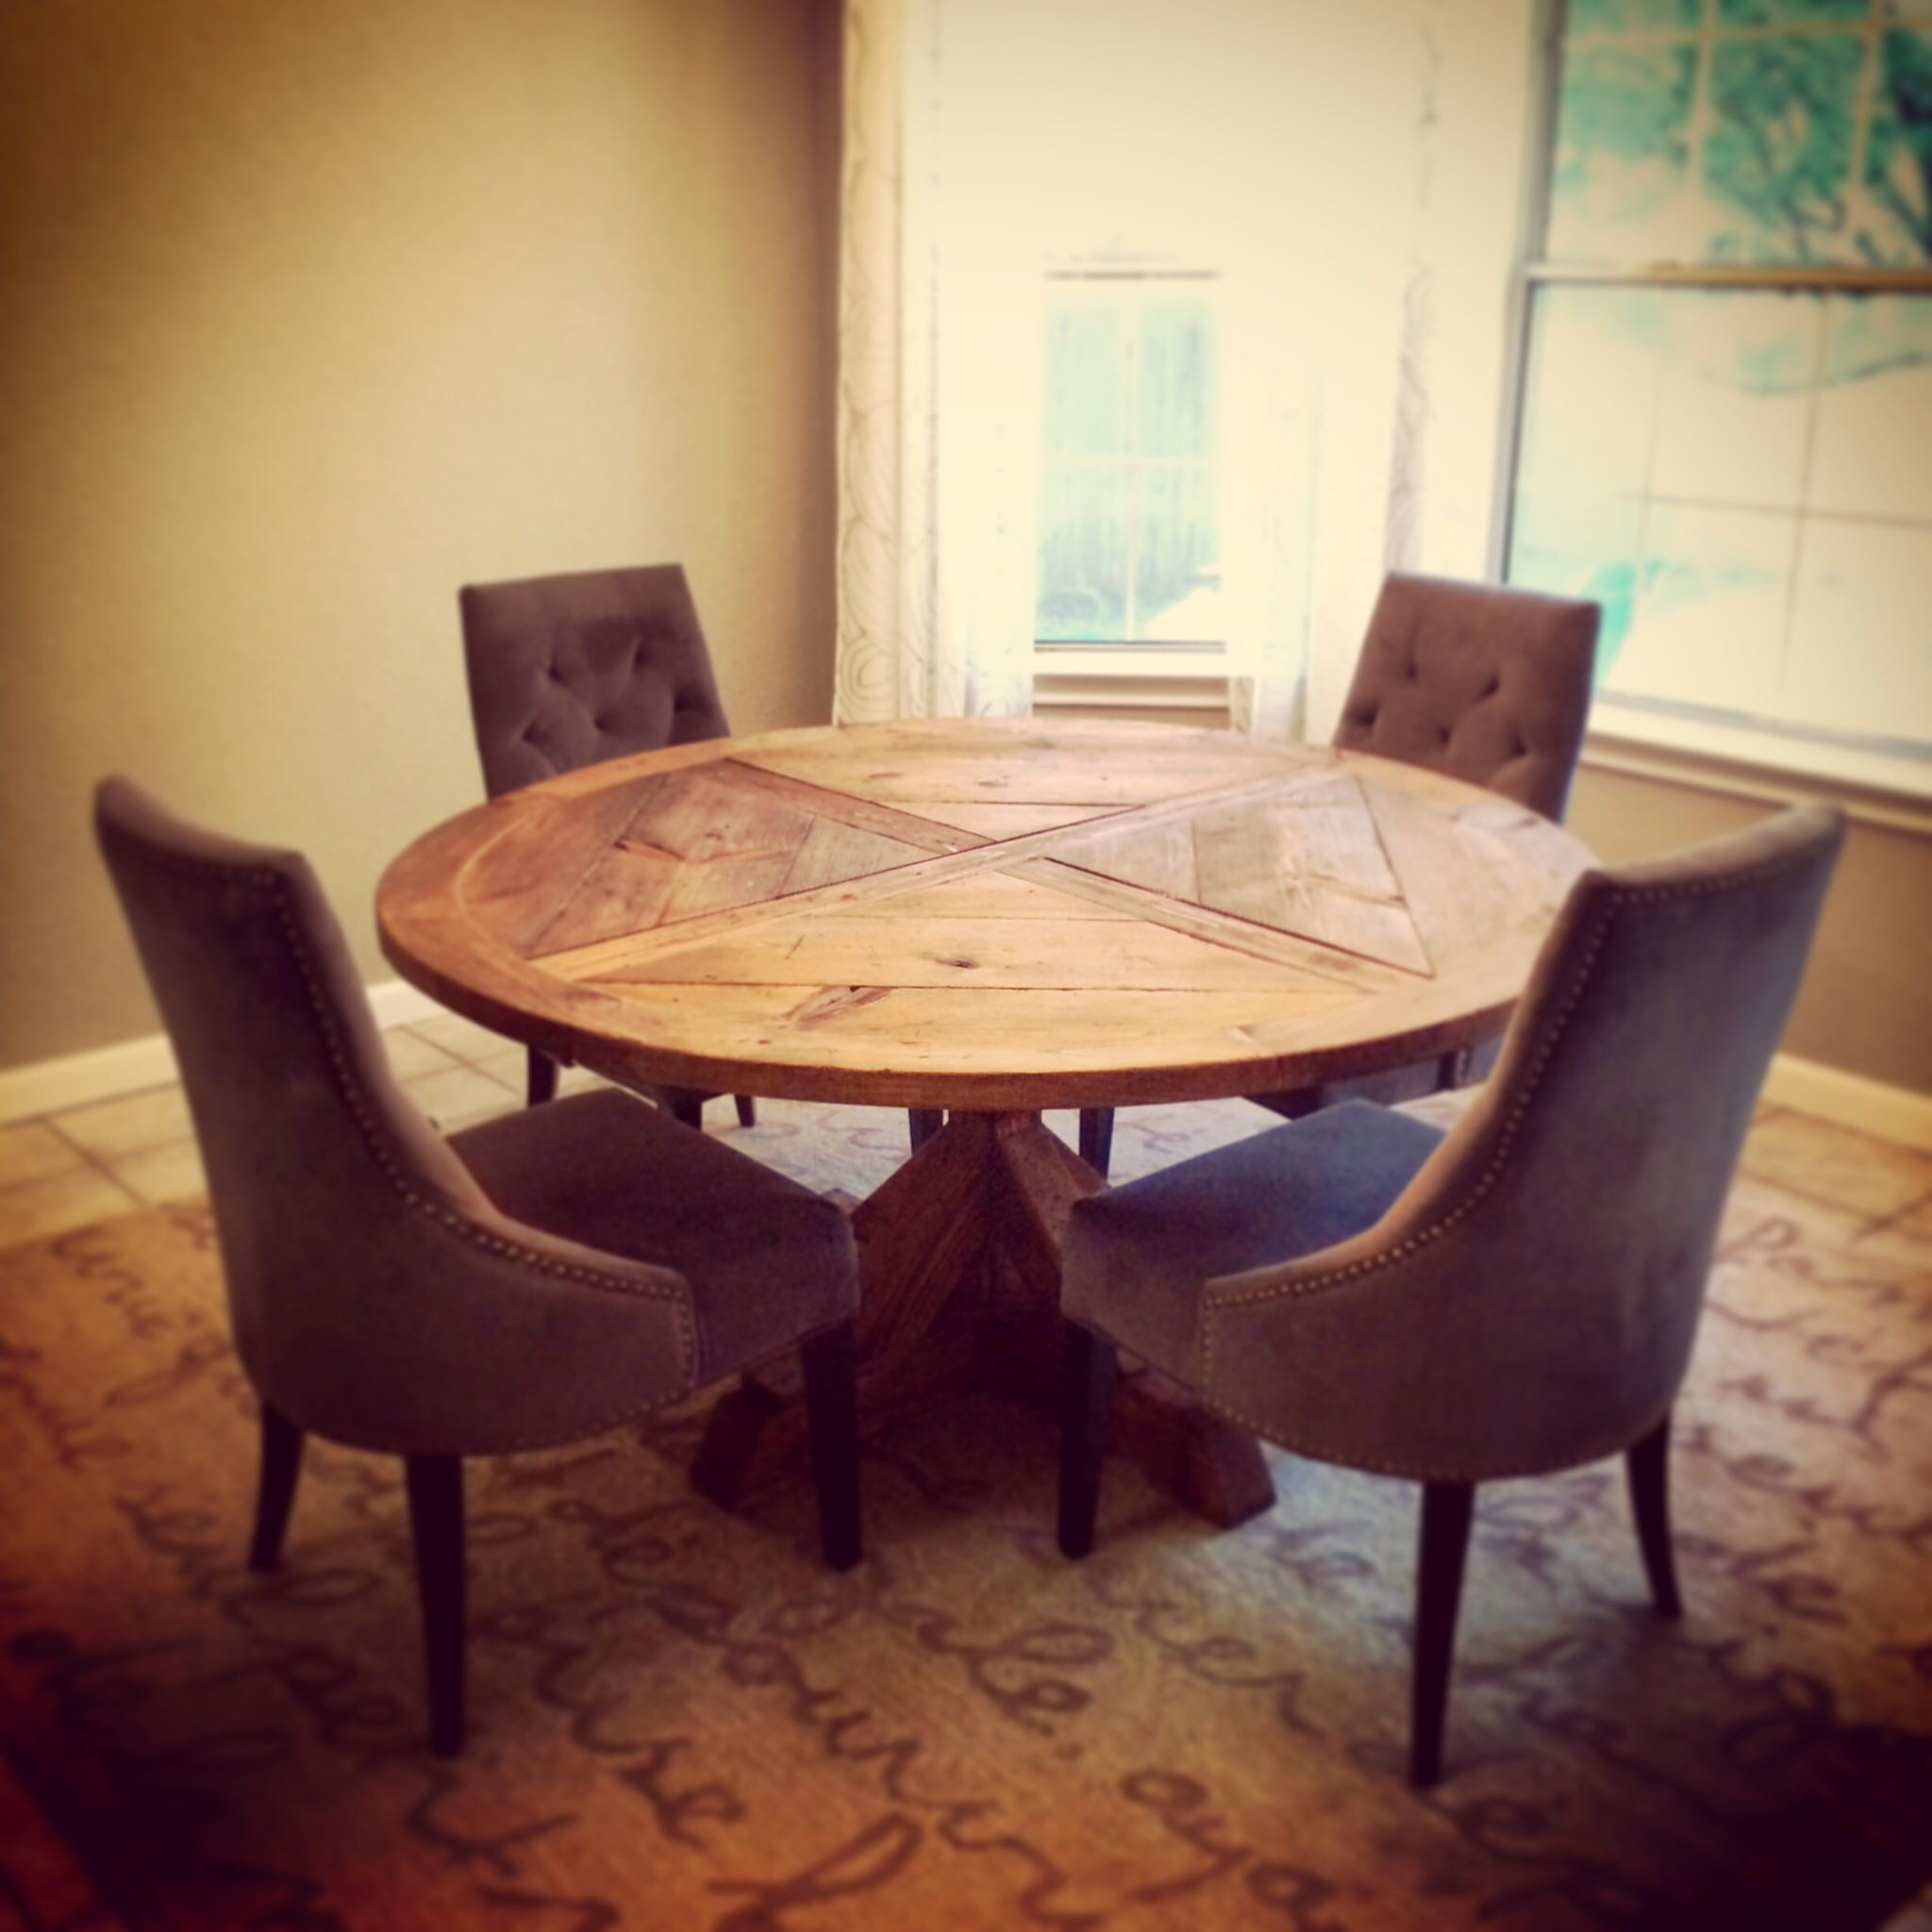 After Dining Room With New Diy Ed Table As Of June